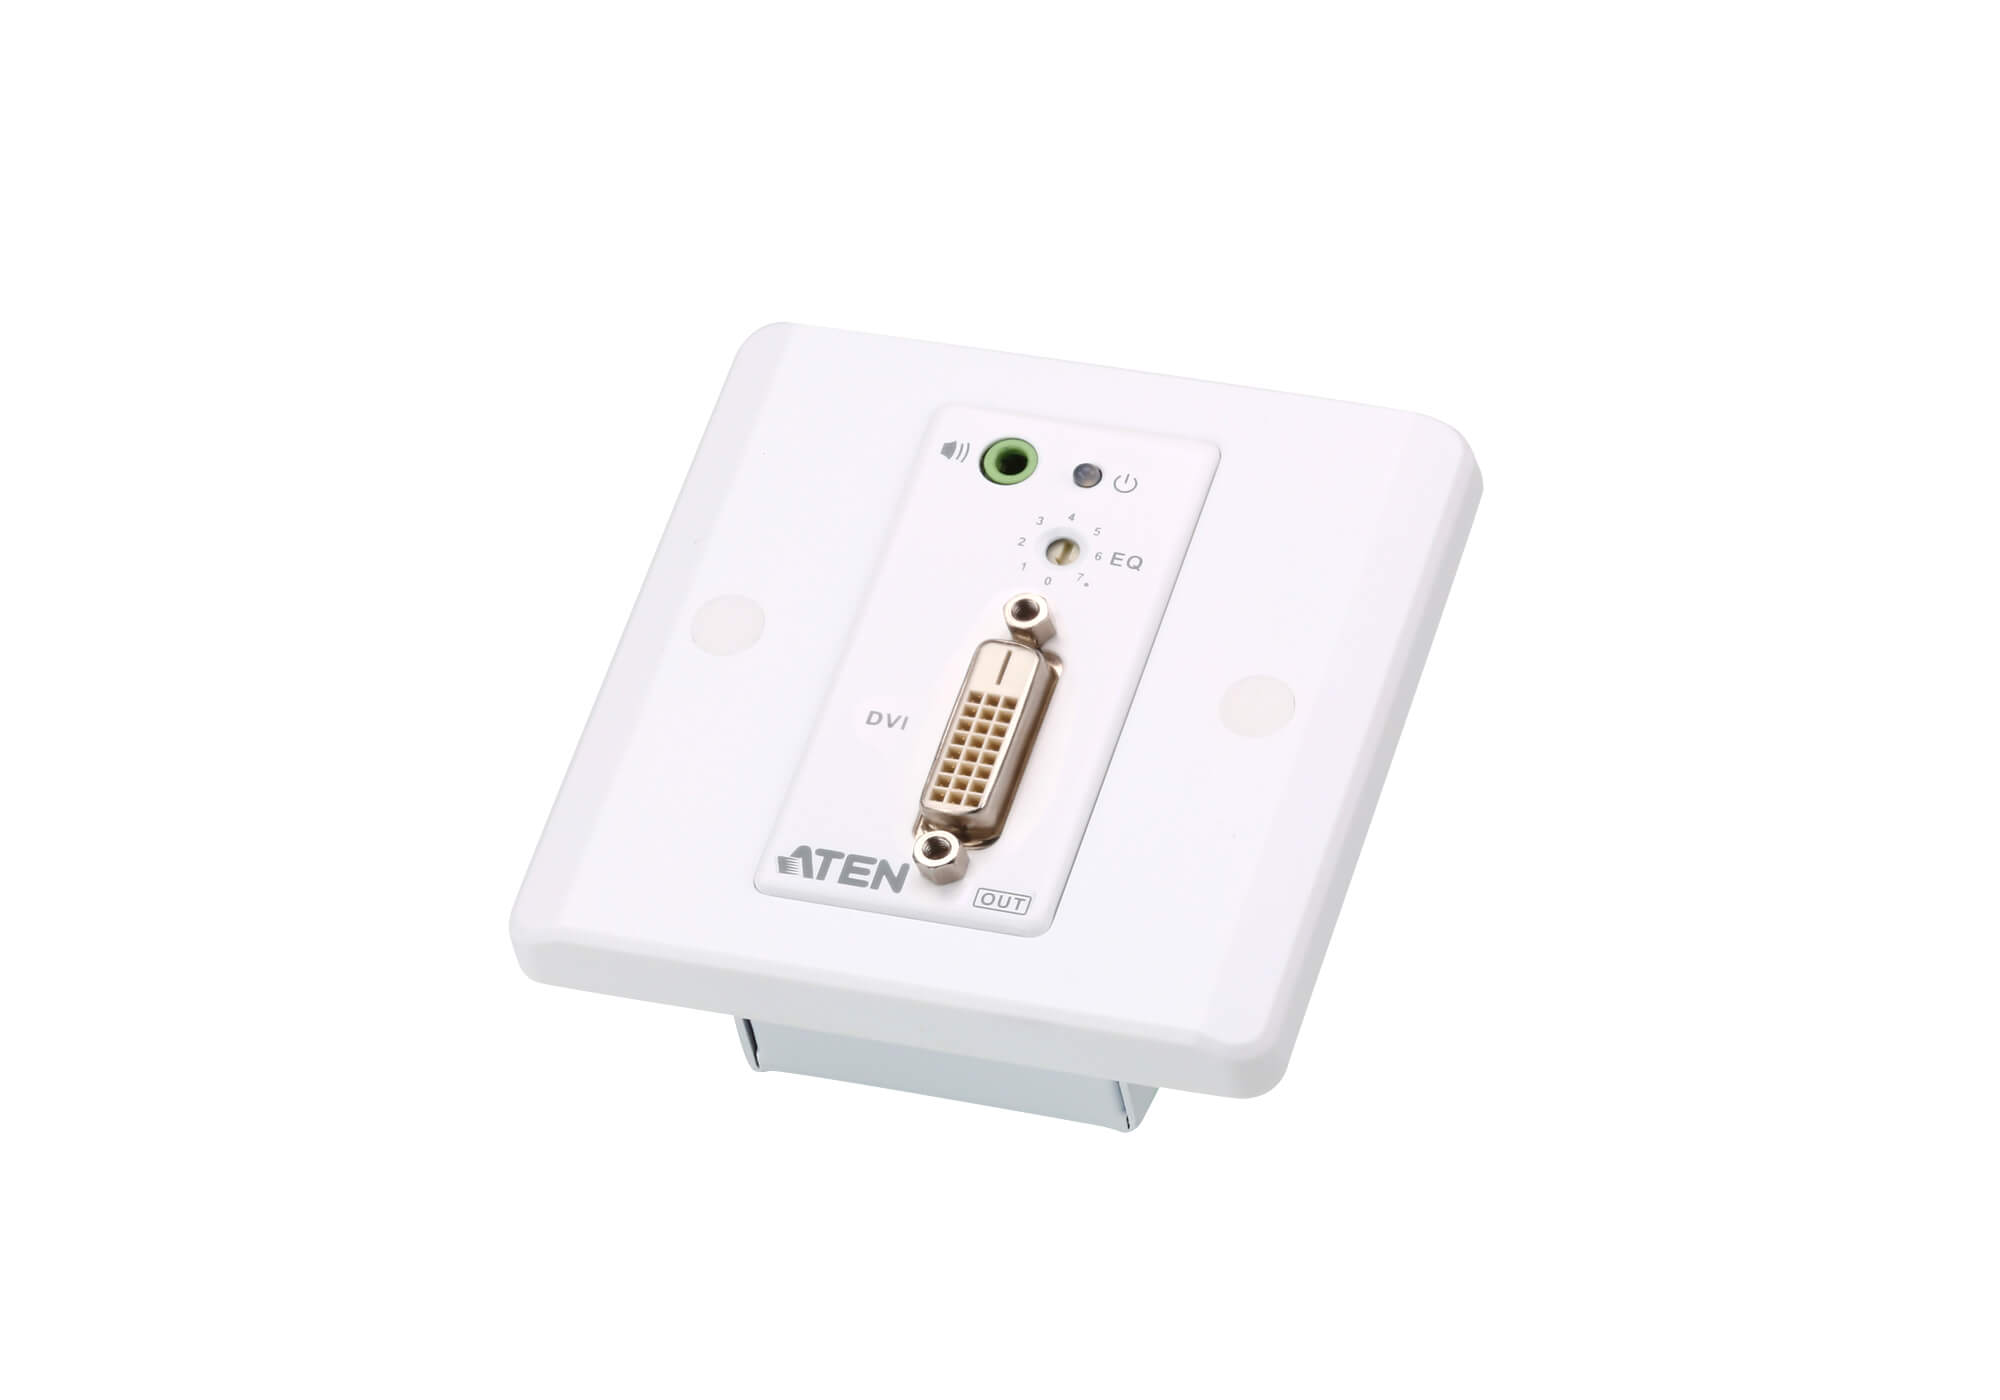 Extensor de DVI/audio Cat 5 con placa de pared MK (1920 x 1200 a 40 m)-4